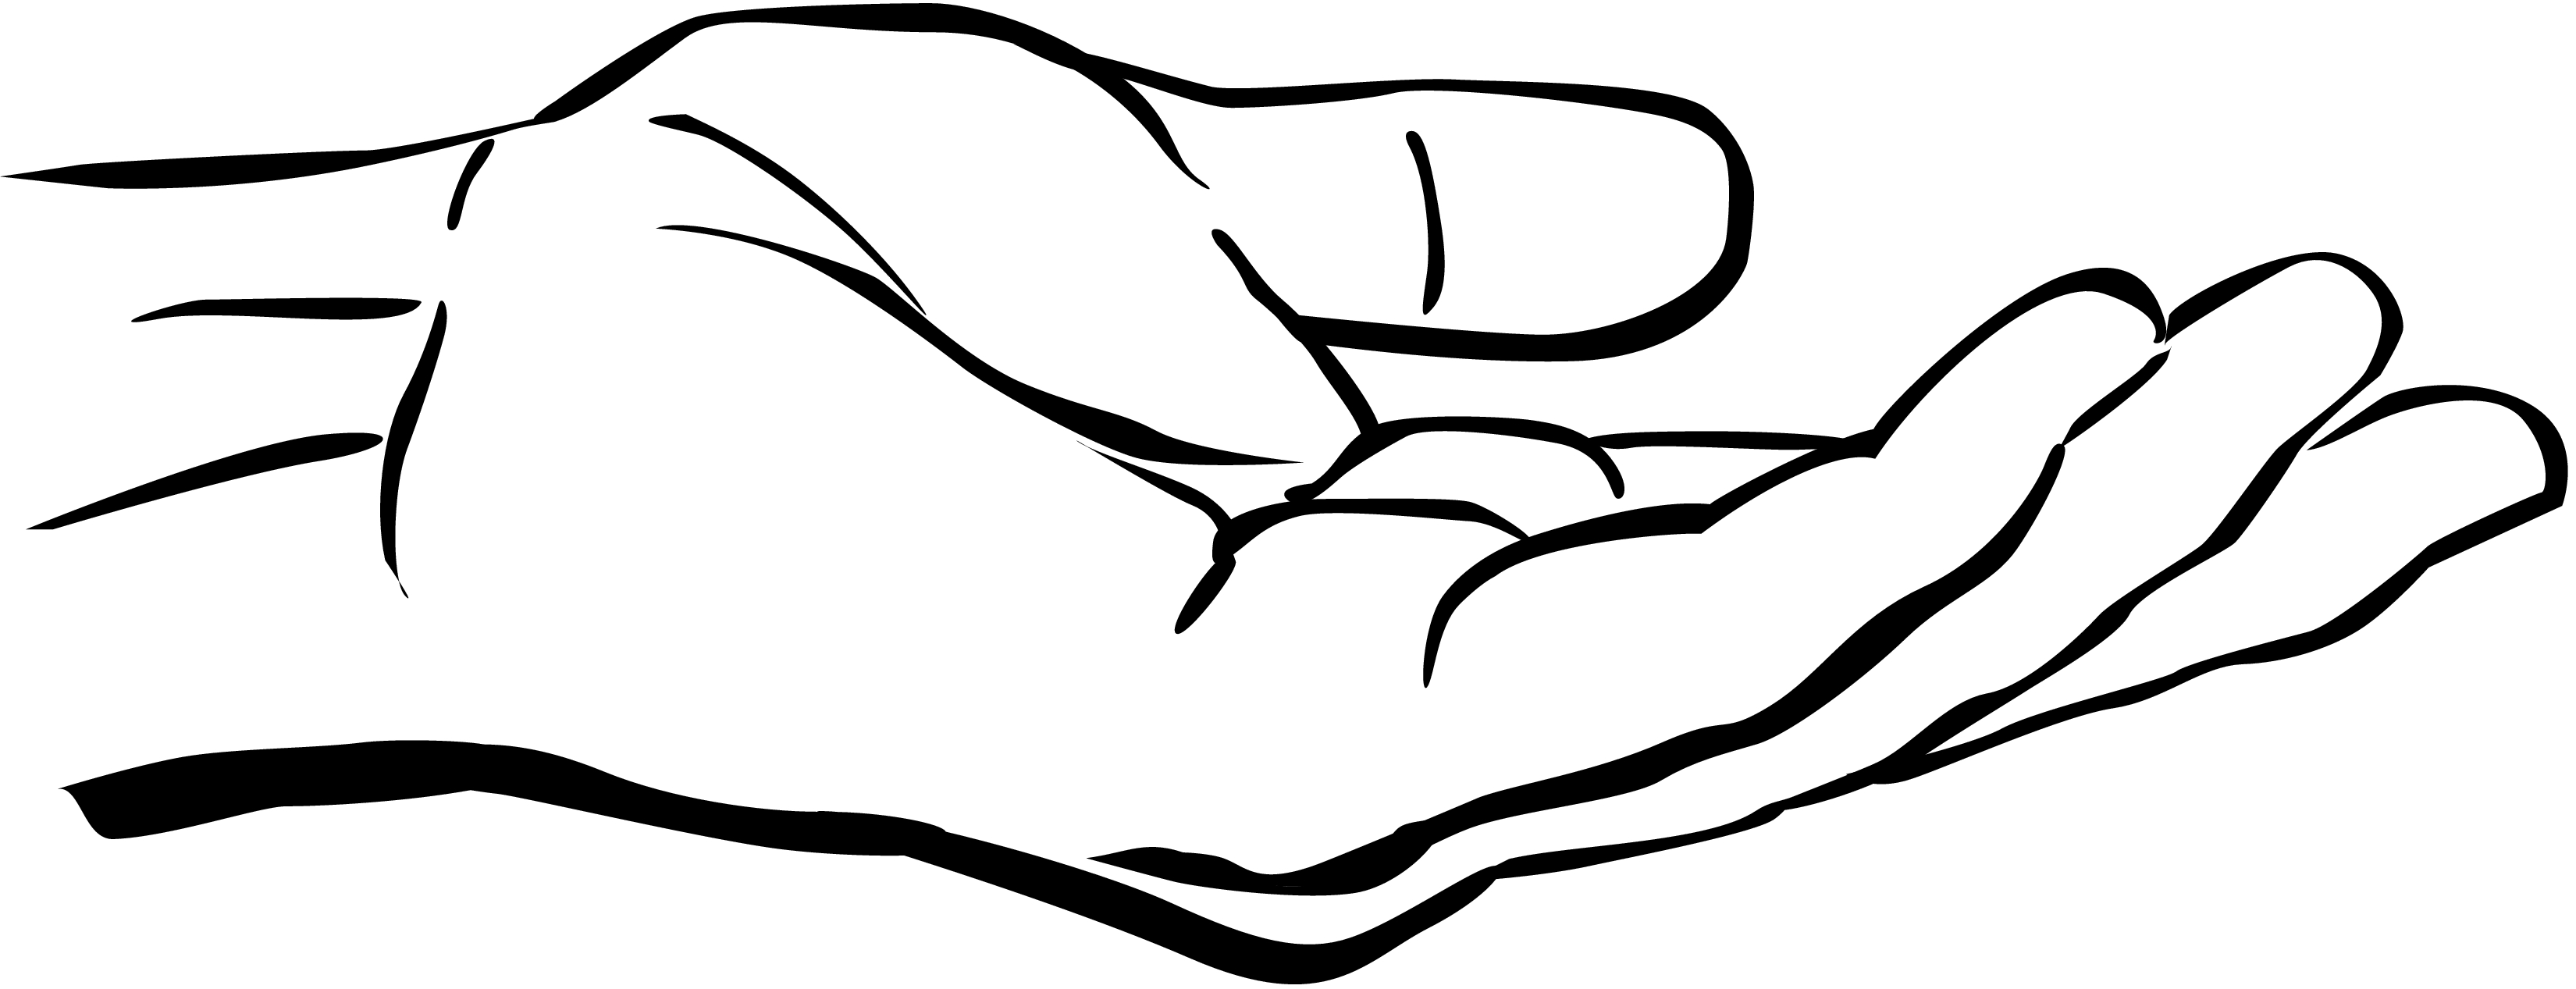 God's hand of care, | Clipart Panda - Free Clipart Images